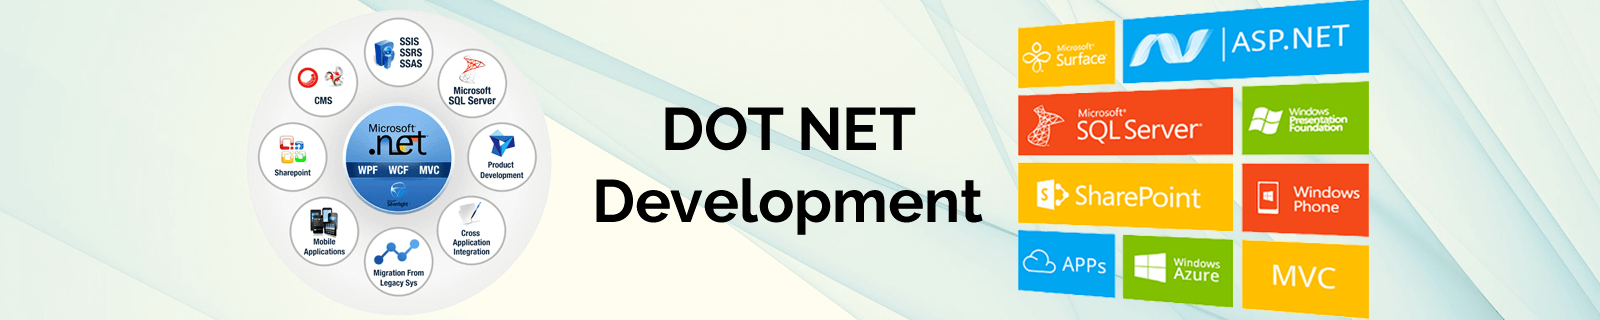 dot-net-development-banner